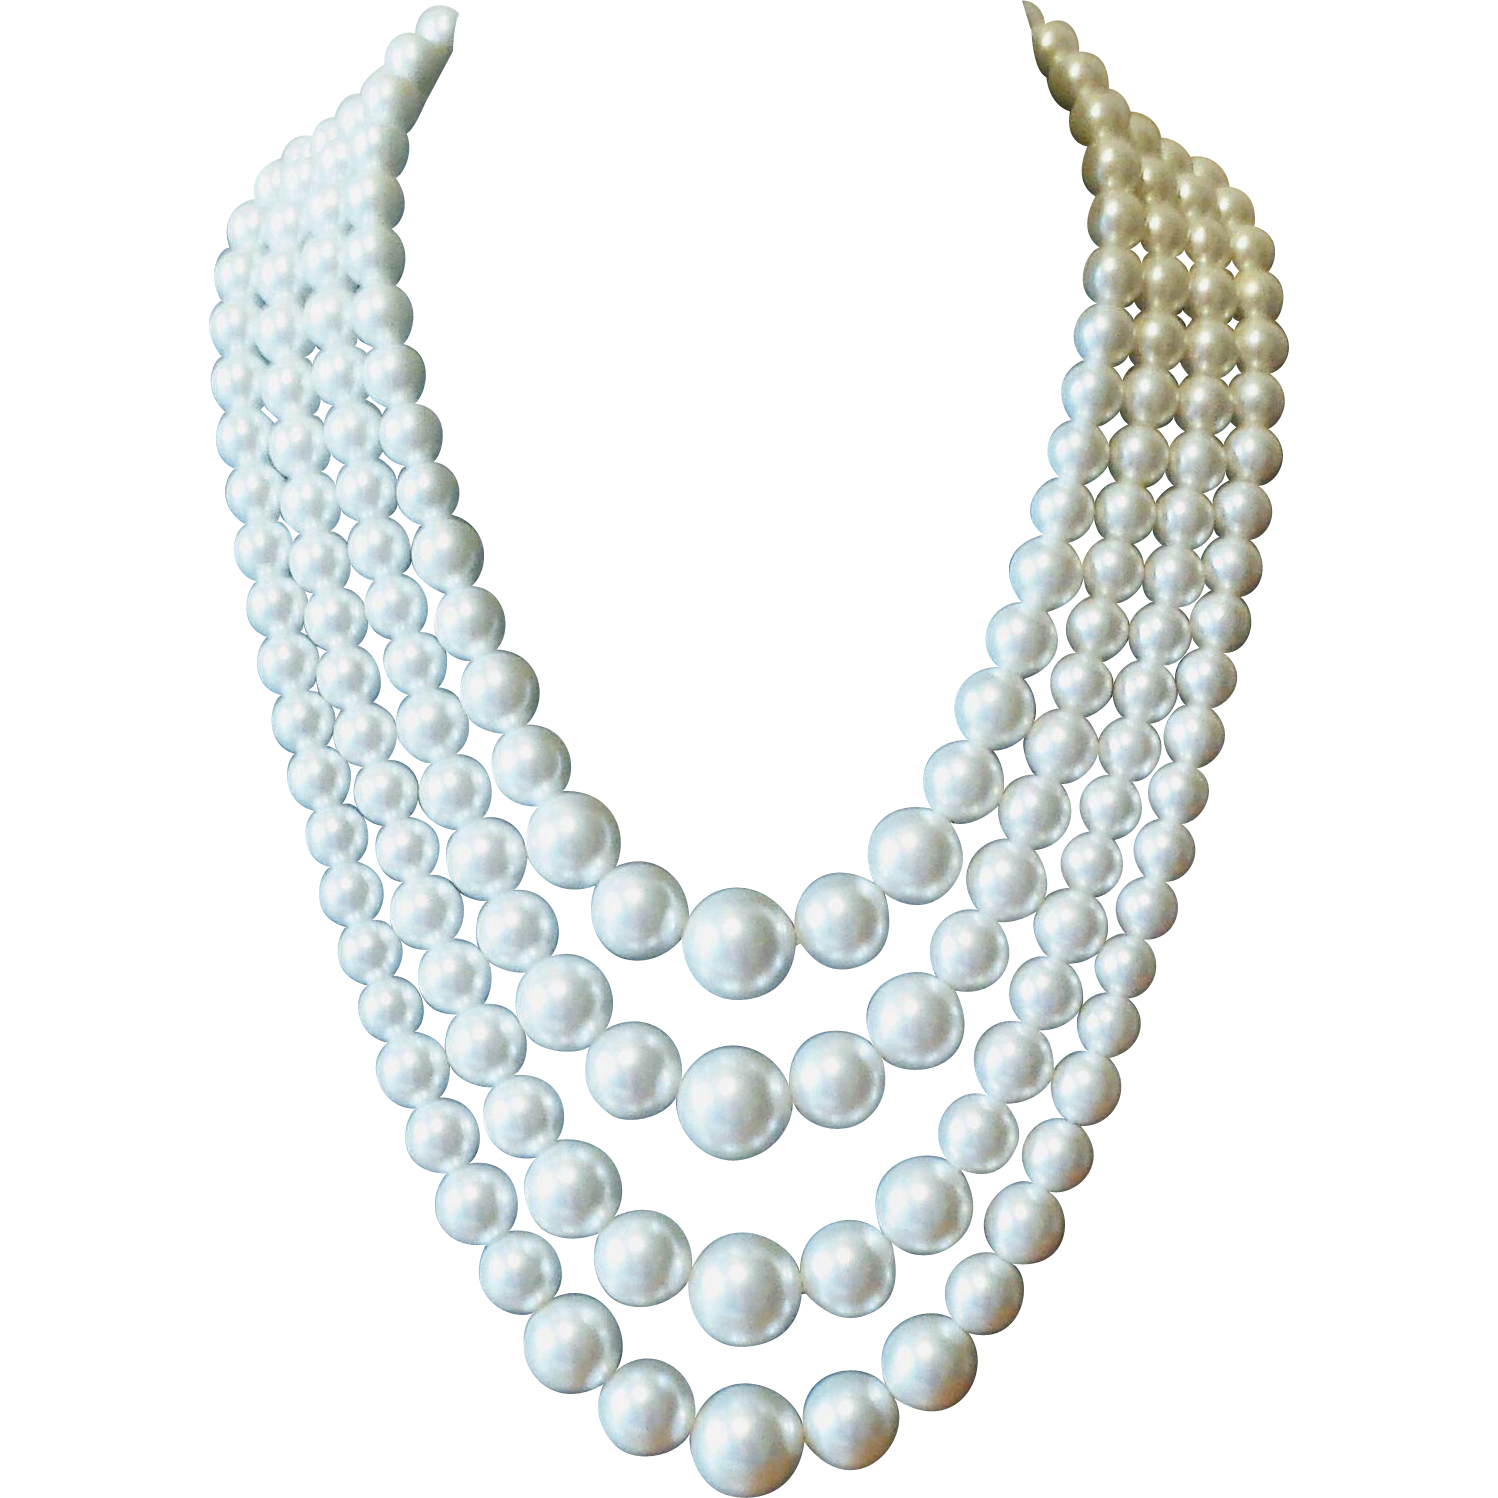 Vintage 1950s Multi Strand White Beaded Faux Pearl Necklace At Whimsicalvintage Rubylane C White Choker Necklace White Beaded Necklaces Vintage Choker Necklace